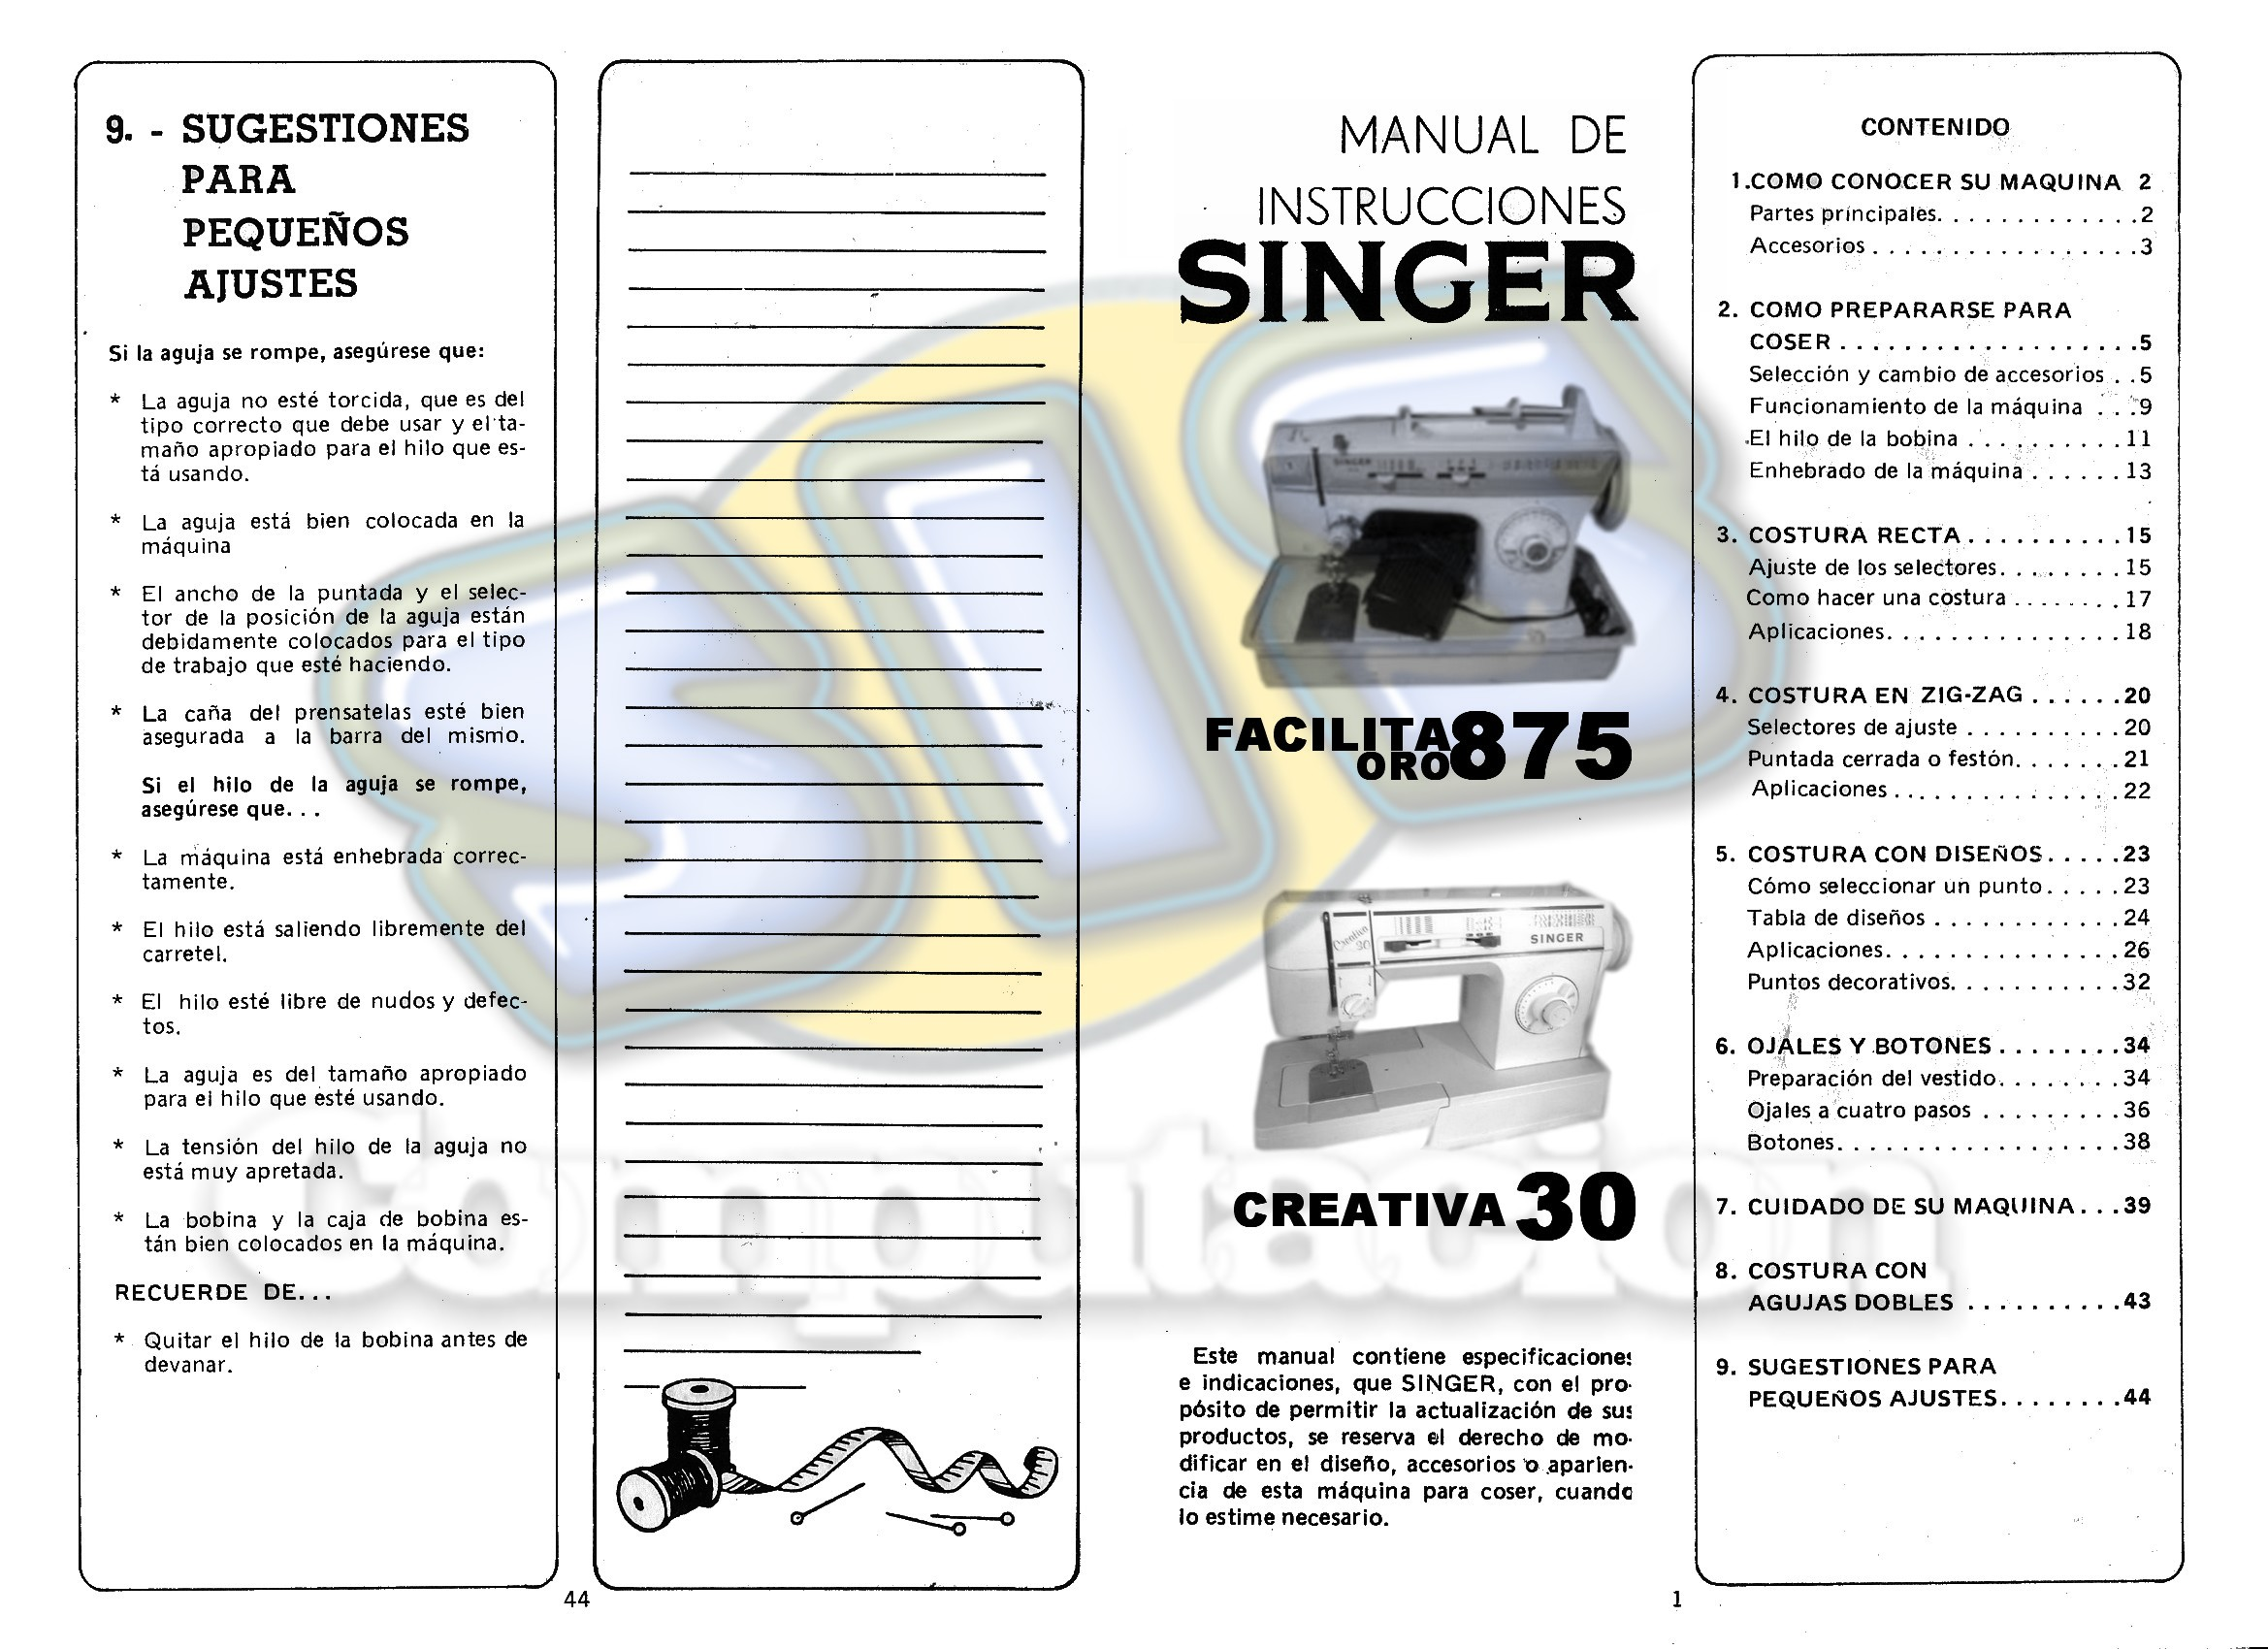 Manual de maquina singer facilita oro 875 & creativa 30